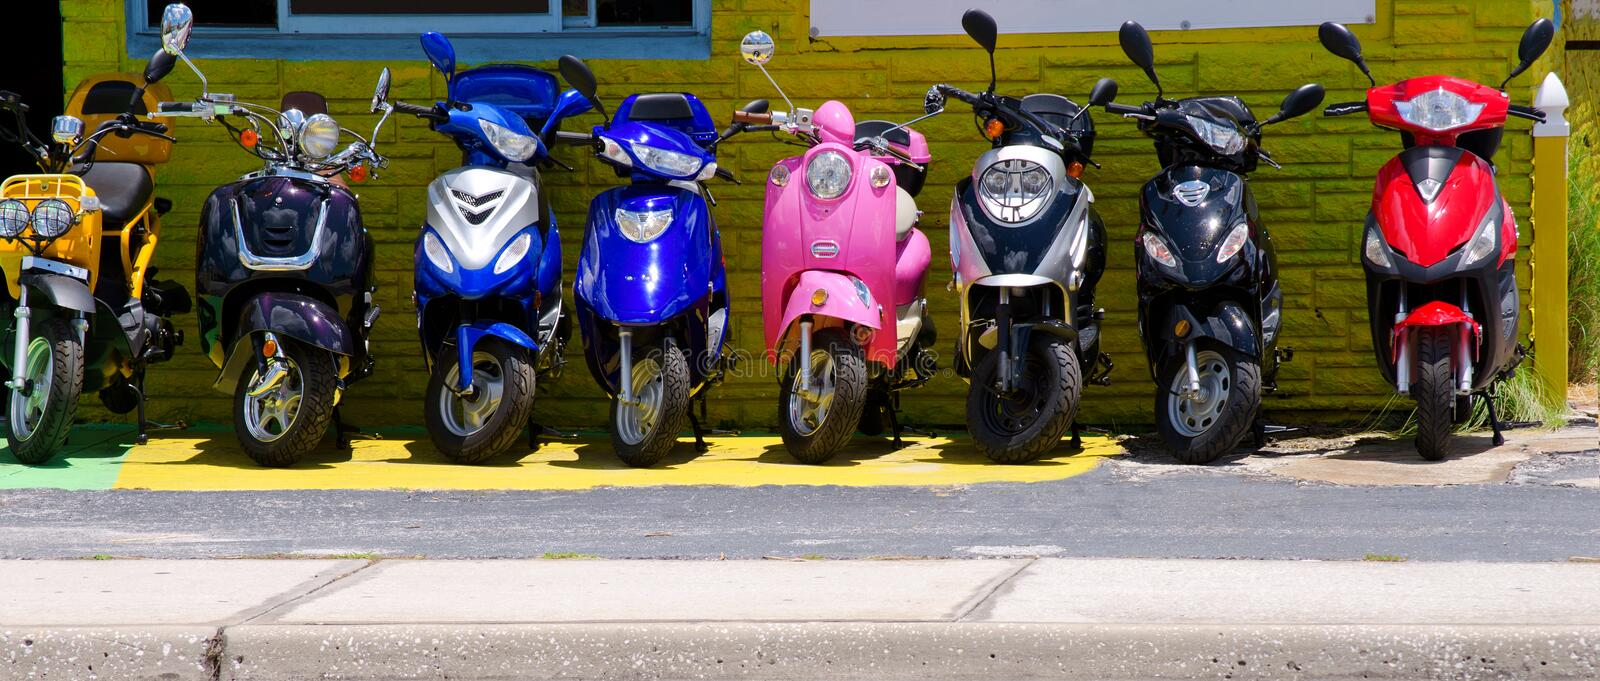 Download Colorful scooters stock image. Image of scooters, yellow - 25720311